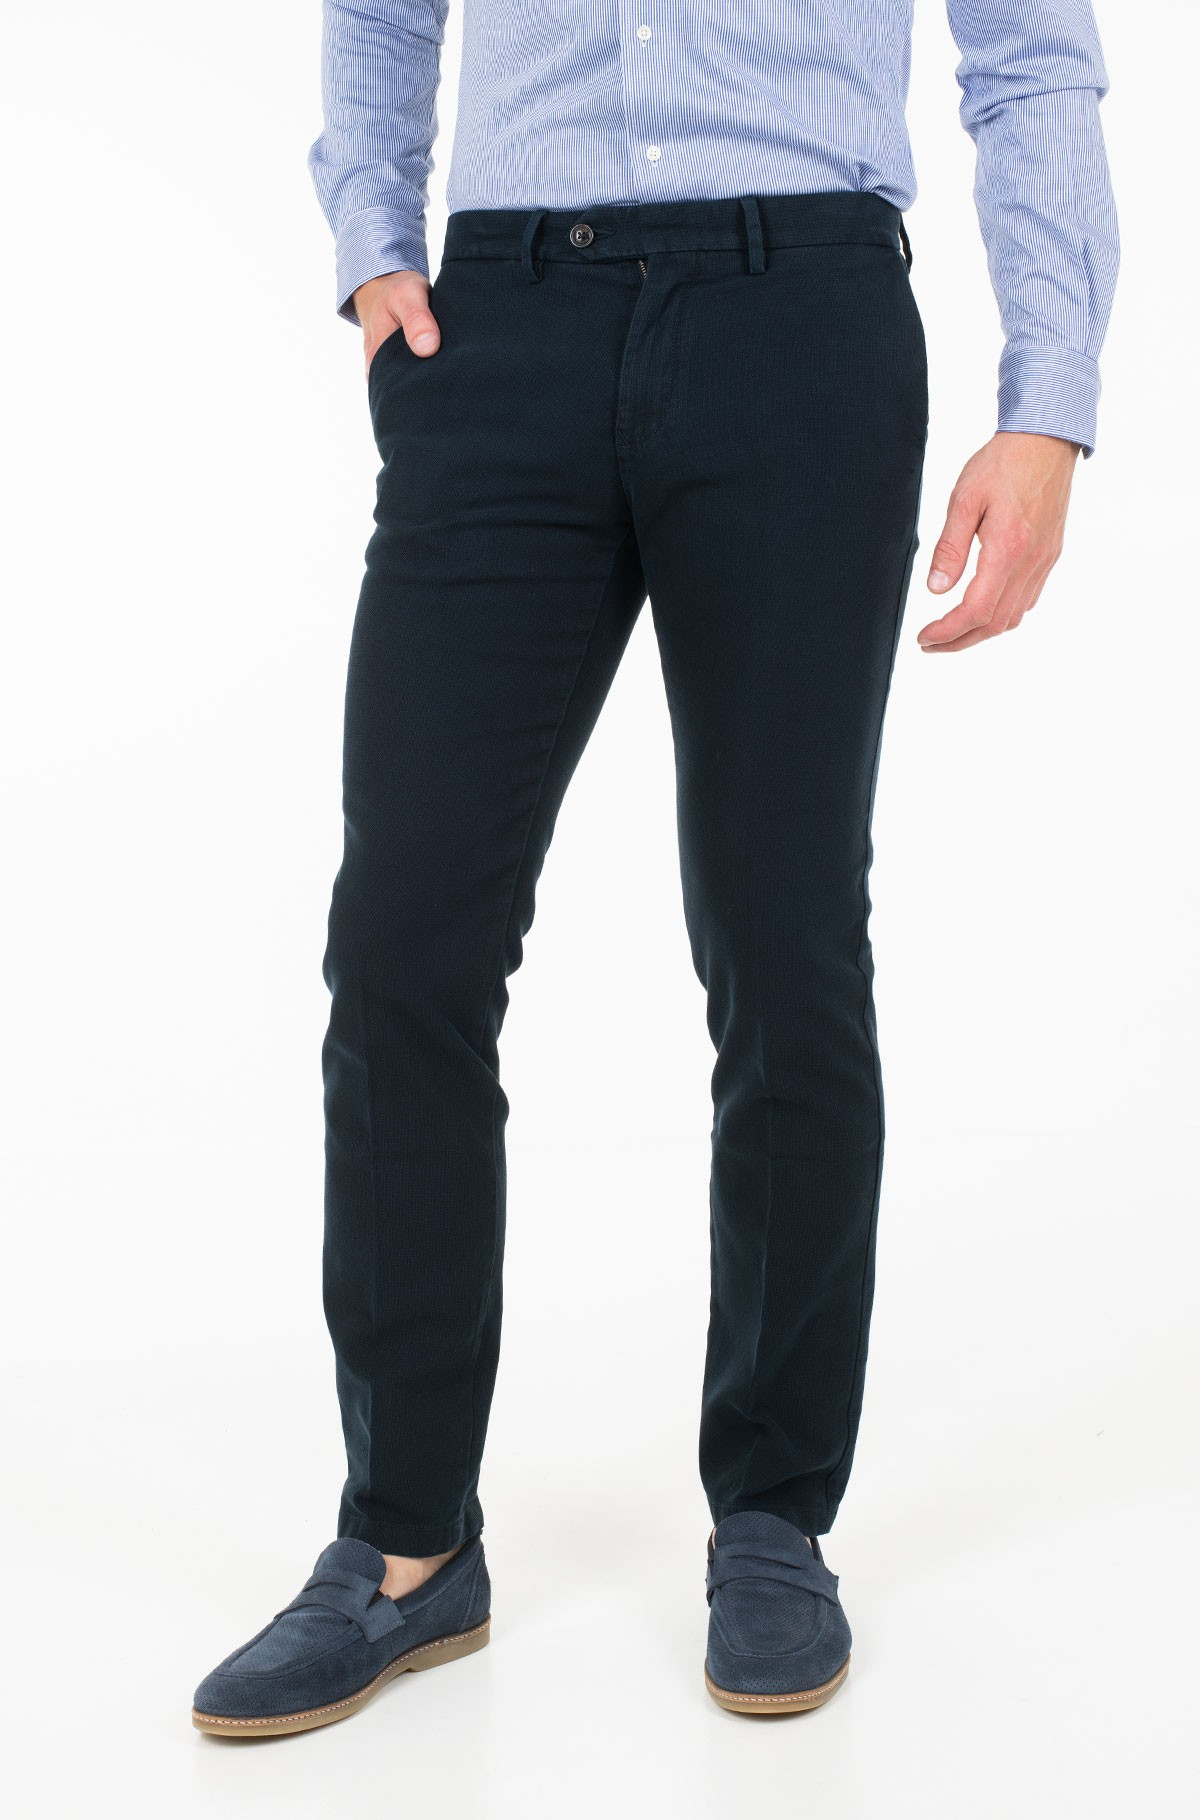 Trousers DENTON CHINO HONEYCOMB FLEX-full-1